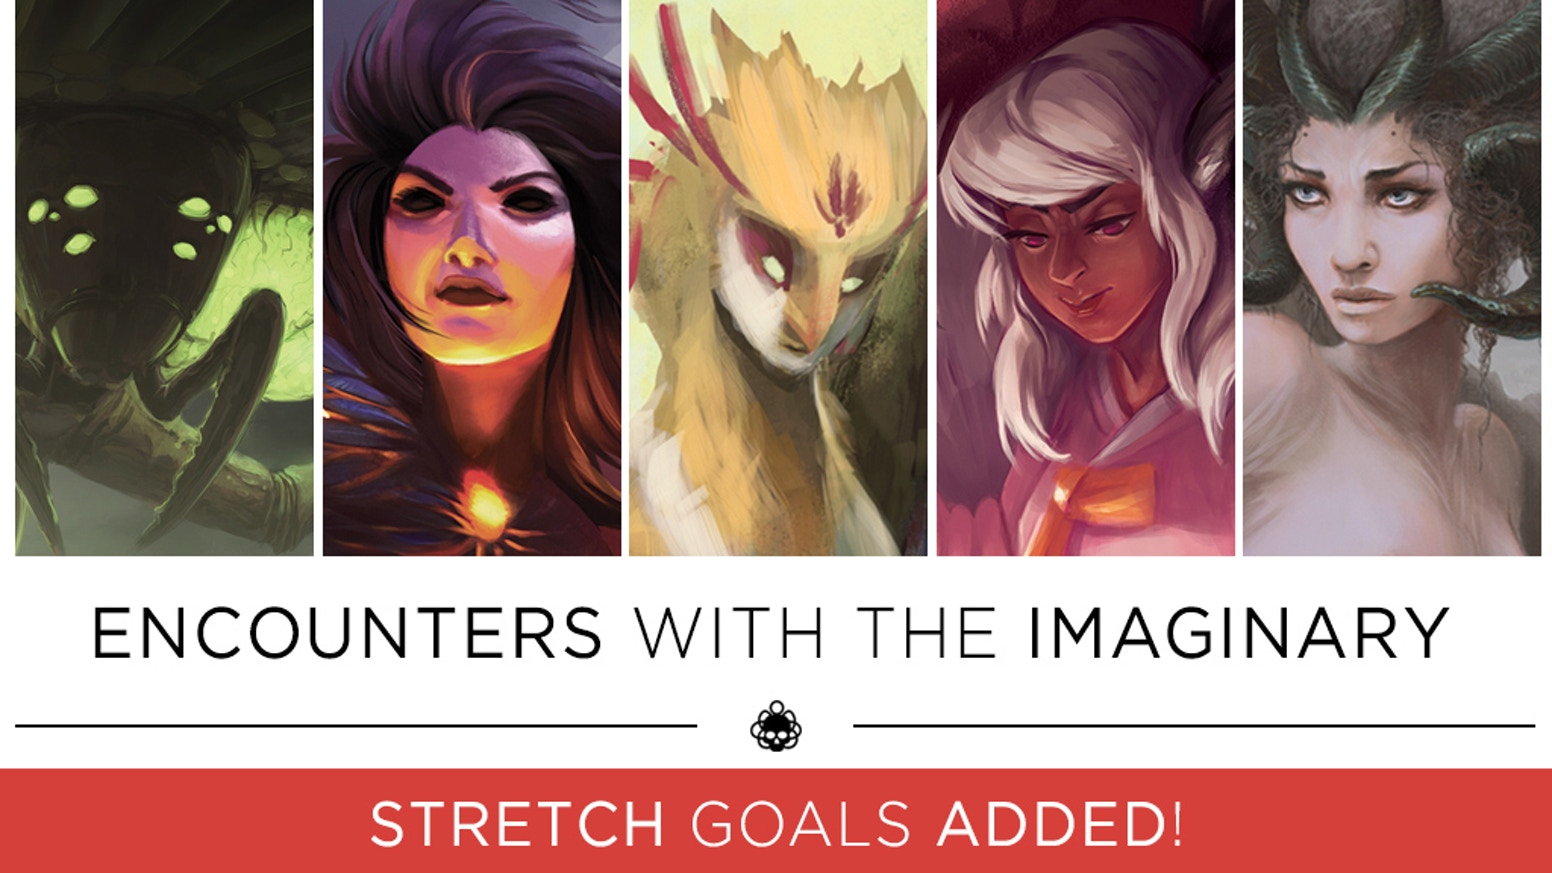 Encounters with the Imaginary is a collaborative art book featuring fantastical illustrations, wondrous narratives, and artistic insights.Volume 1 is available for purchase - and Volume 2 is now available for pre-order!